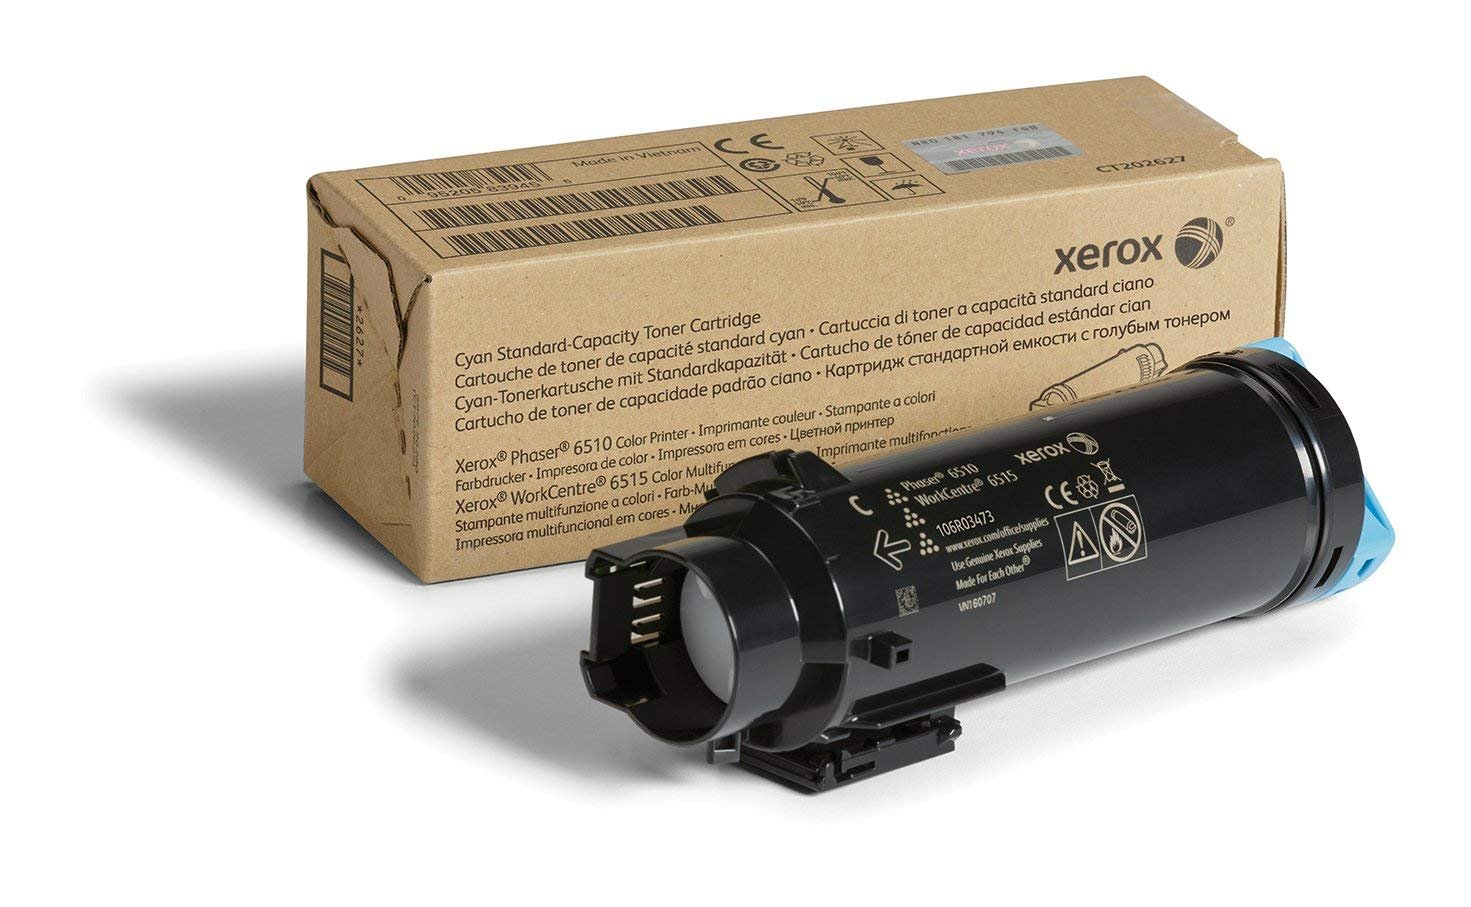 Xerox Phaser 6510/Workcentre 6515 Cyan Standard Capacity Toner Cartridge (1,000 Pages) - 106R03473